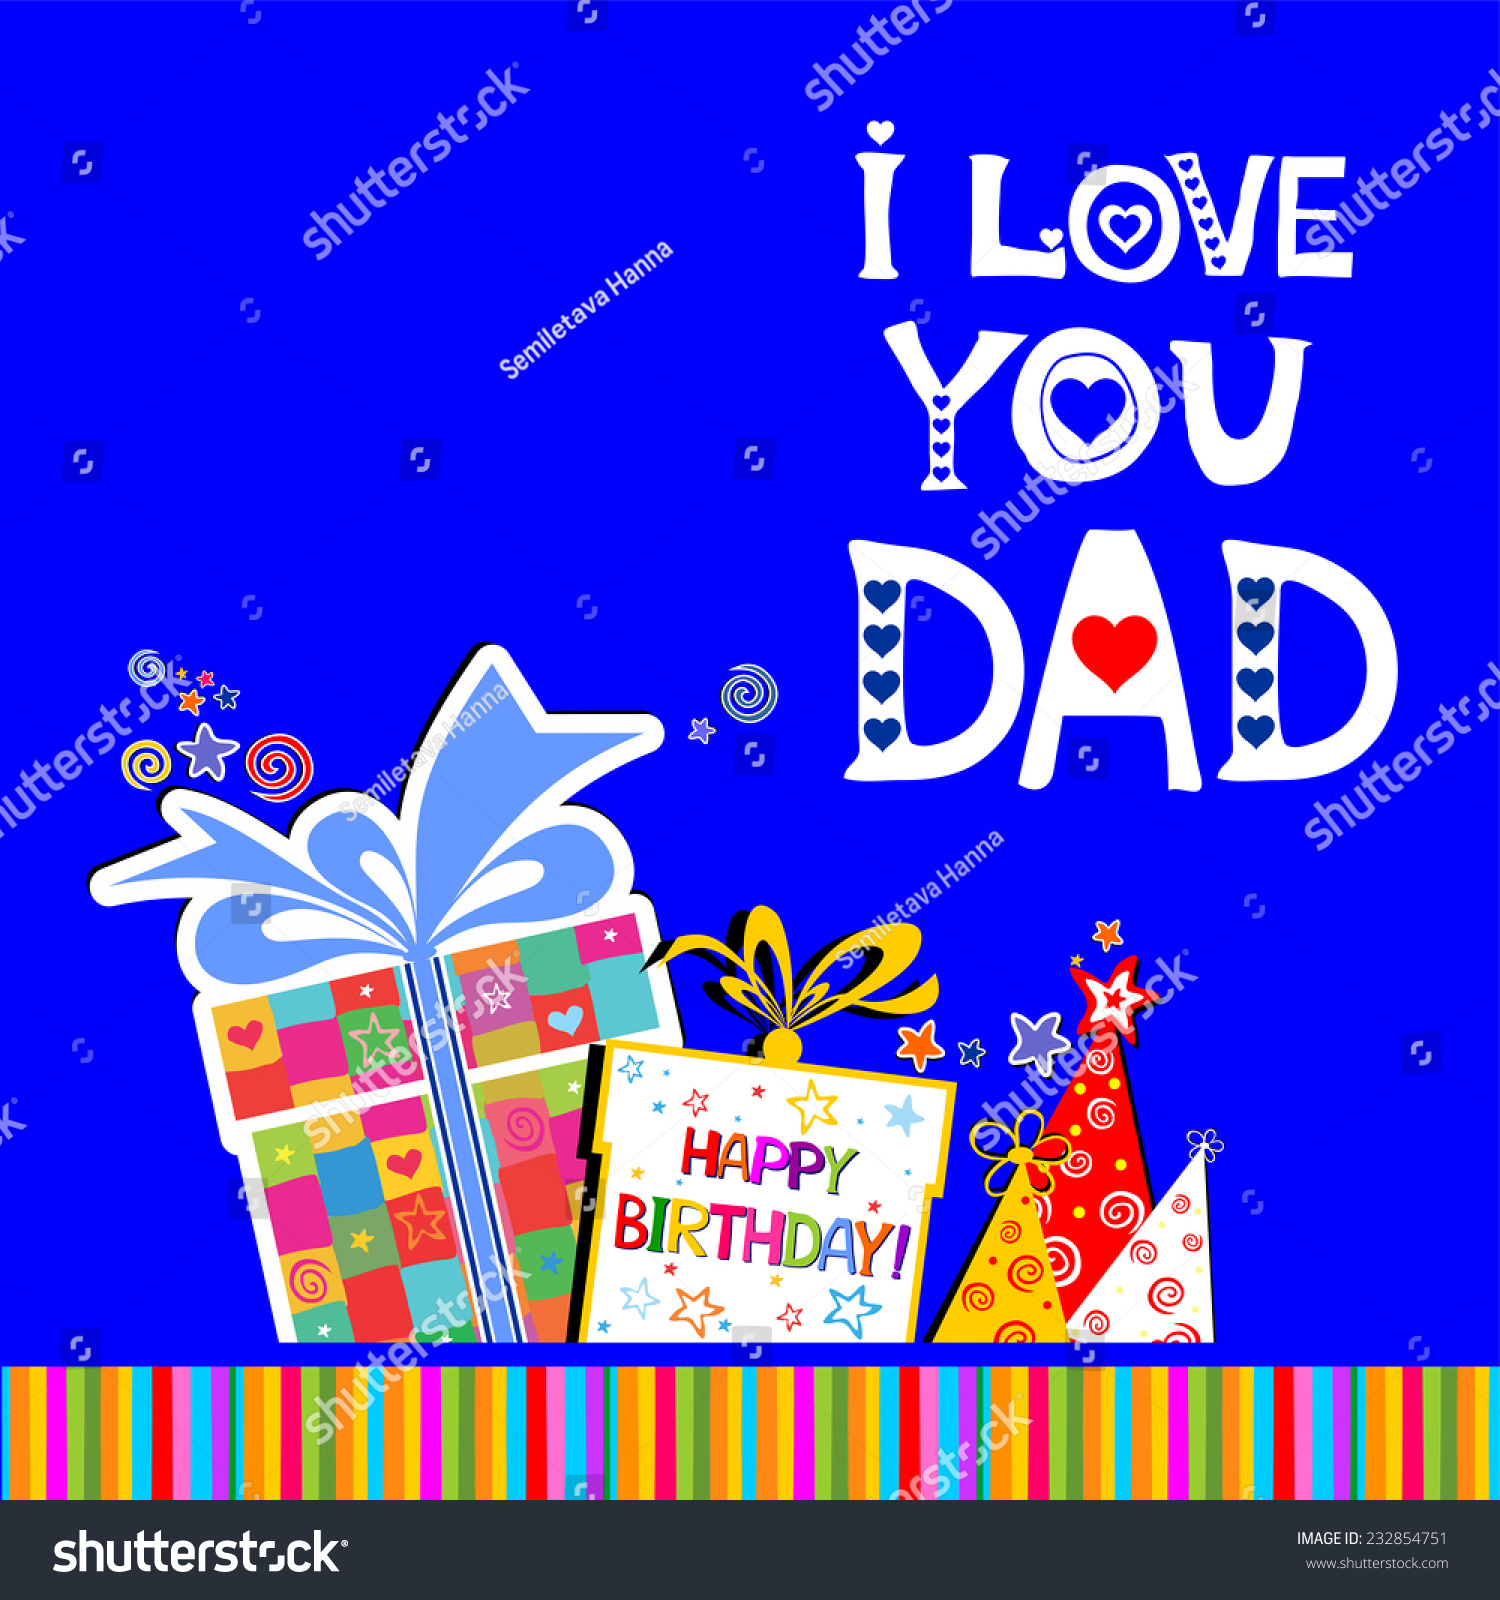 Happy birthday card love you dad stock vector 232854751 shutterstock happy birthday card i love you dad celebration blue background with birthday gift boxes bookmarktalkfo Choice Image